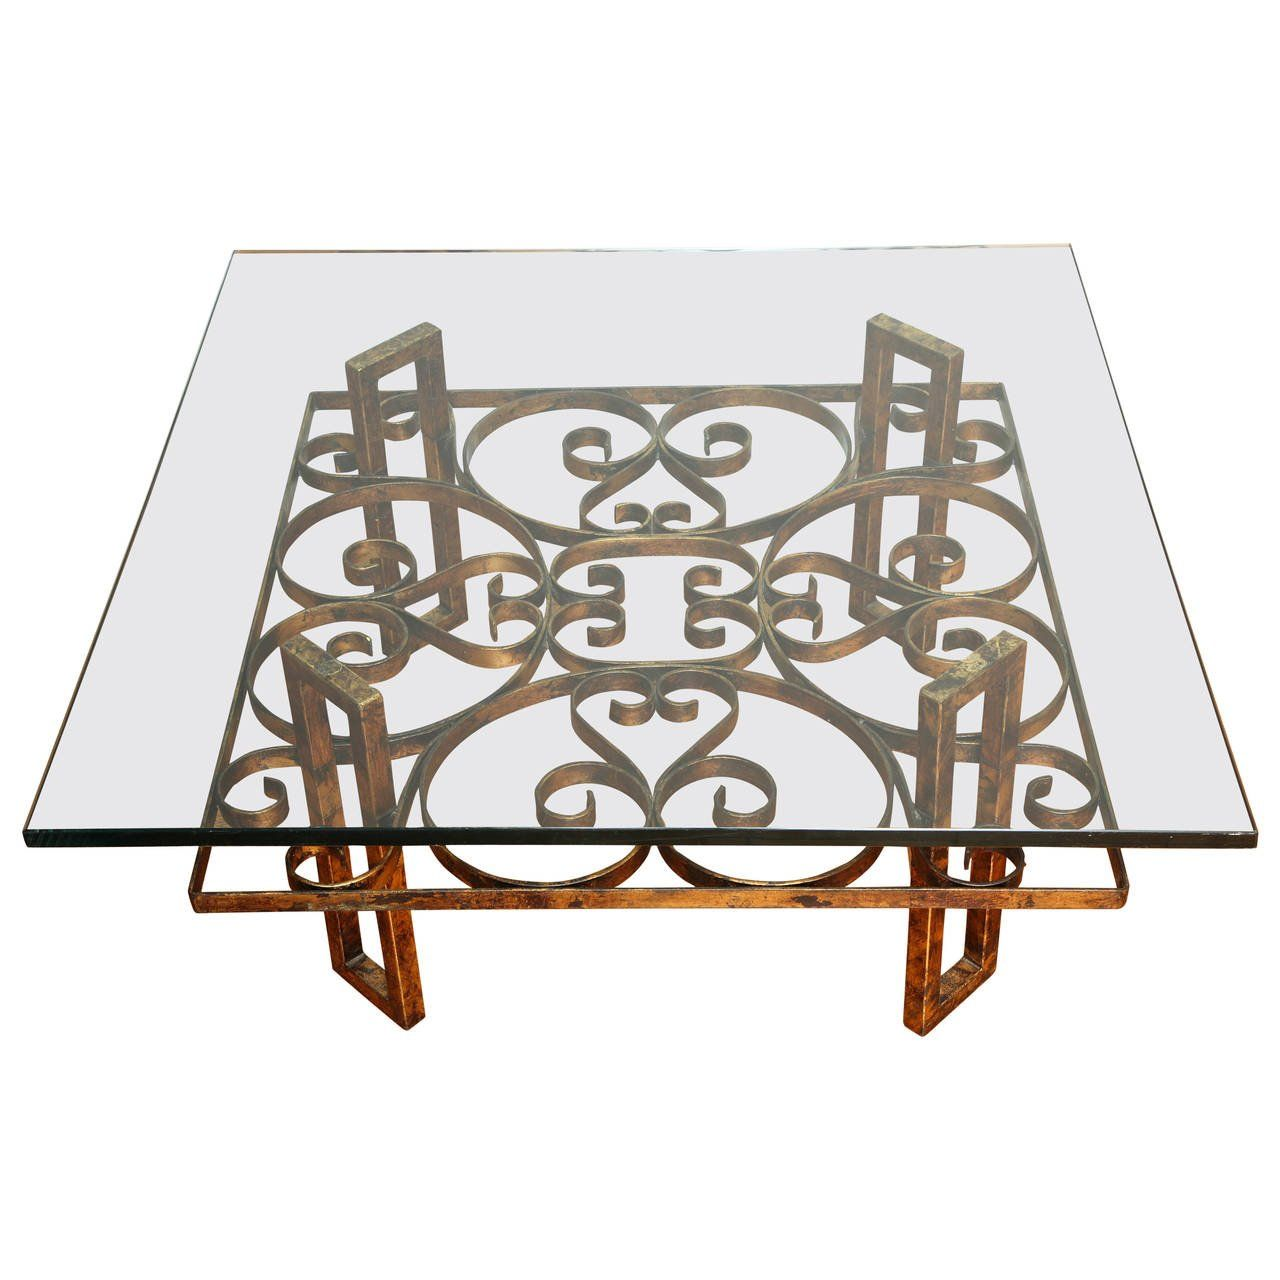 Gilded Wrought Iron Square Coffee Table With Scroll Motif Glass Top Iron Coffee Table Coffee Table Square Wrought Iron Table Legs [ 1280 x 1280 Pixel ]